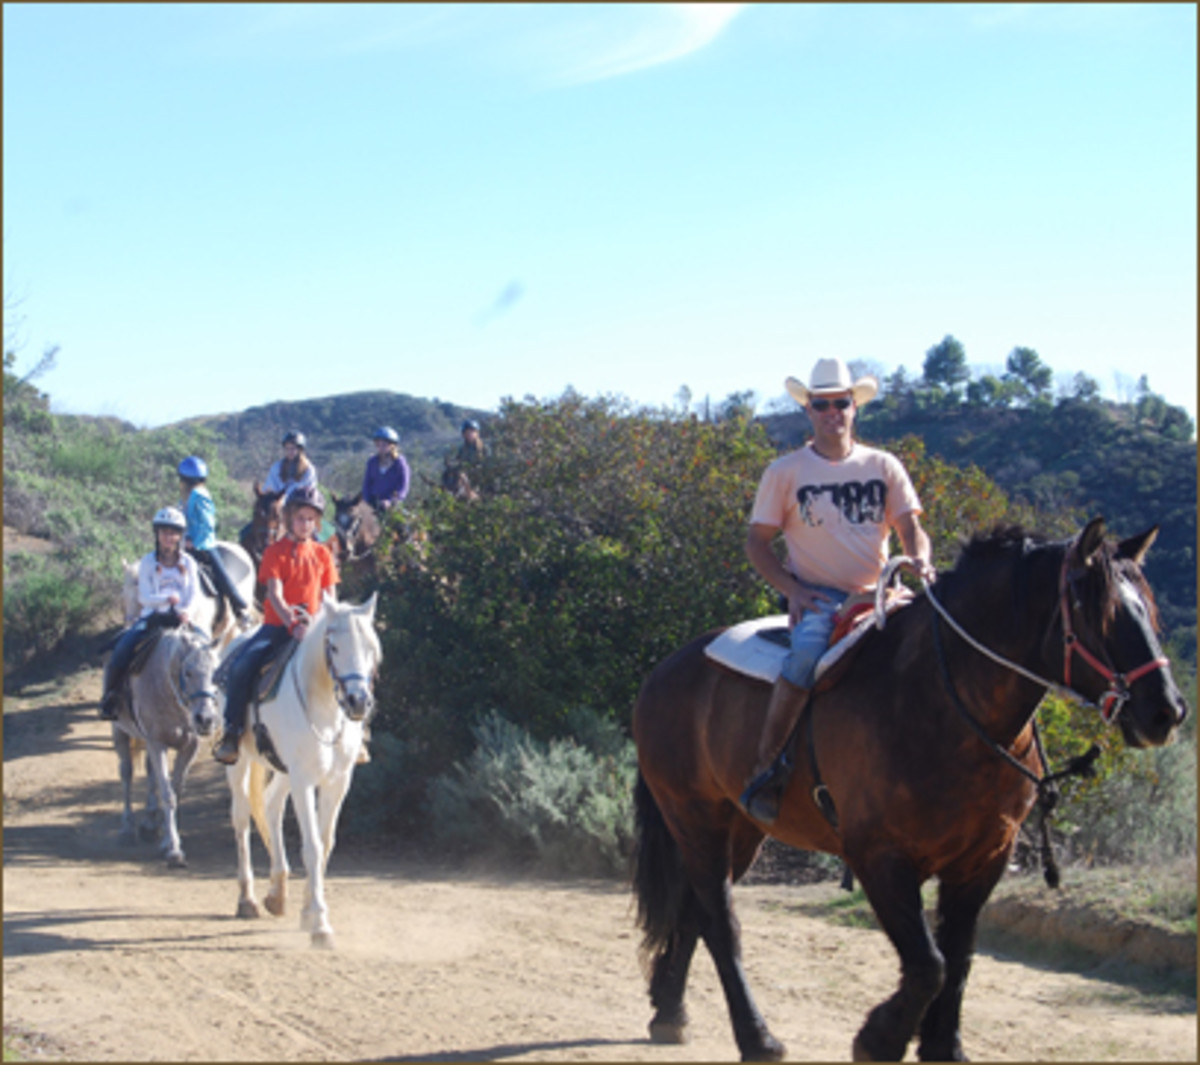 photo courtesy of The LA Horseback Riding.